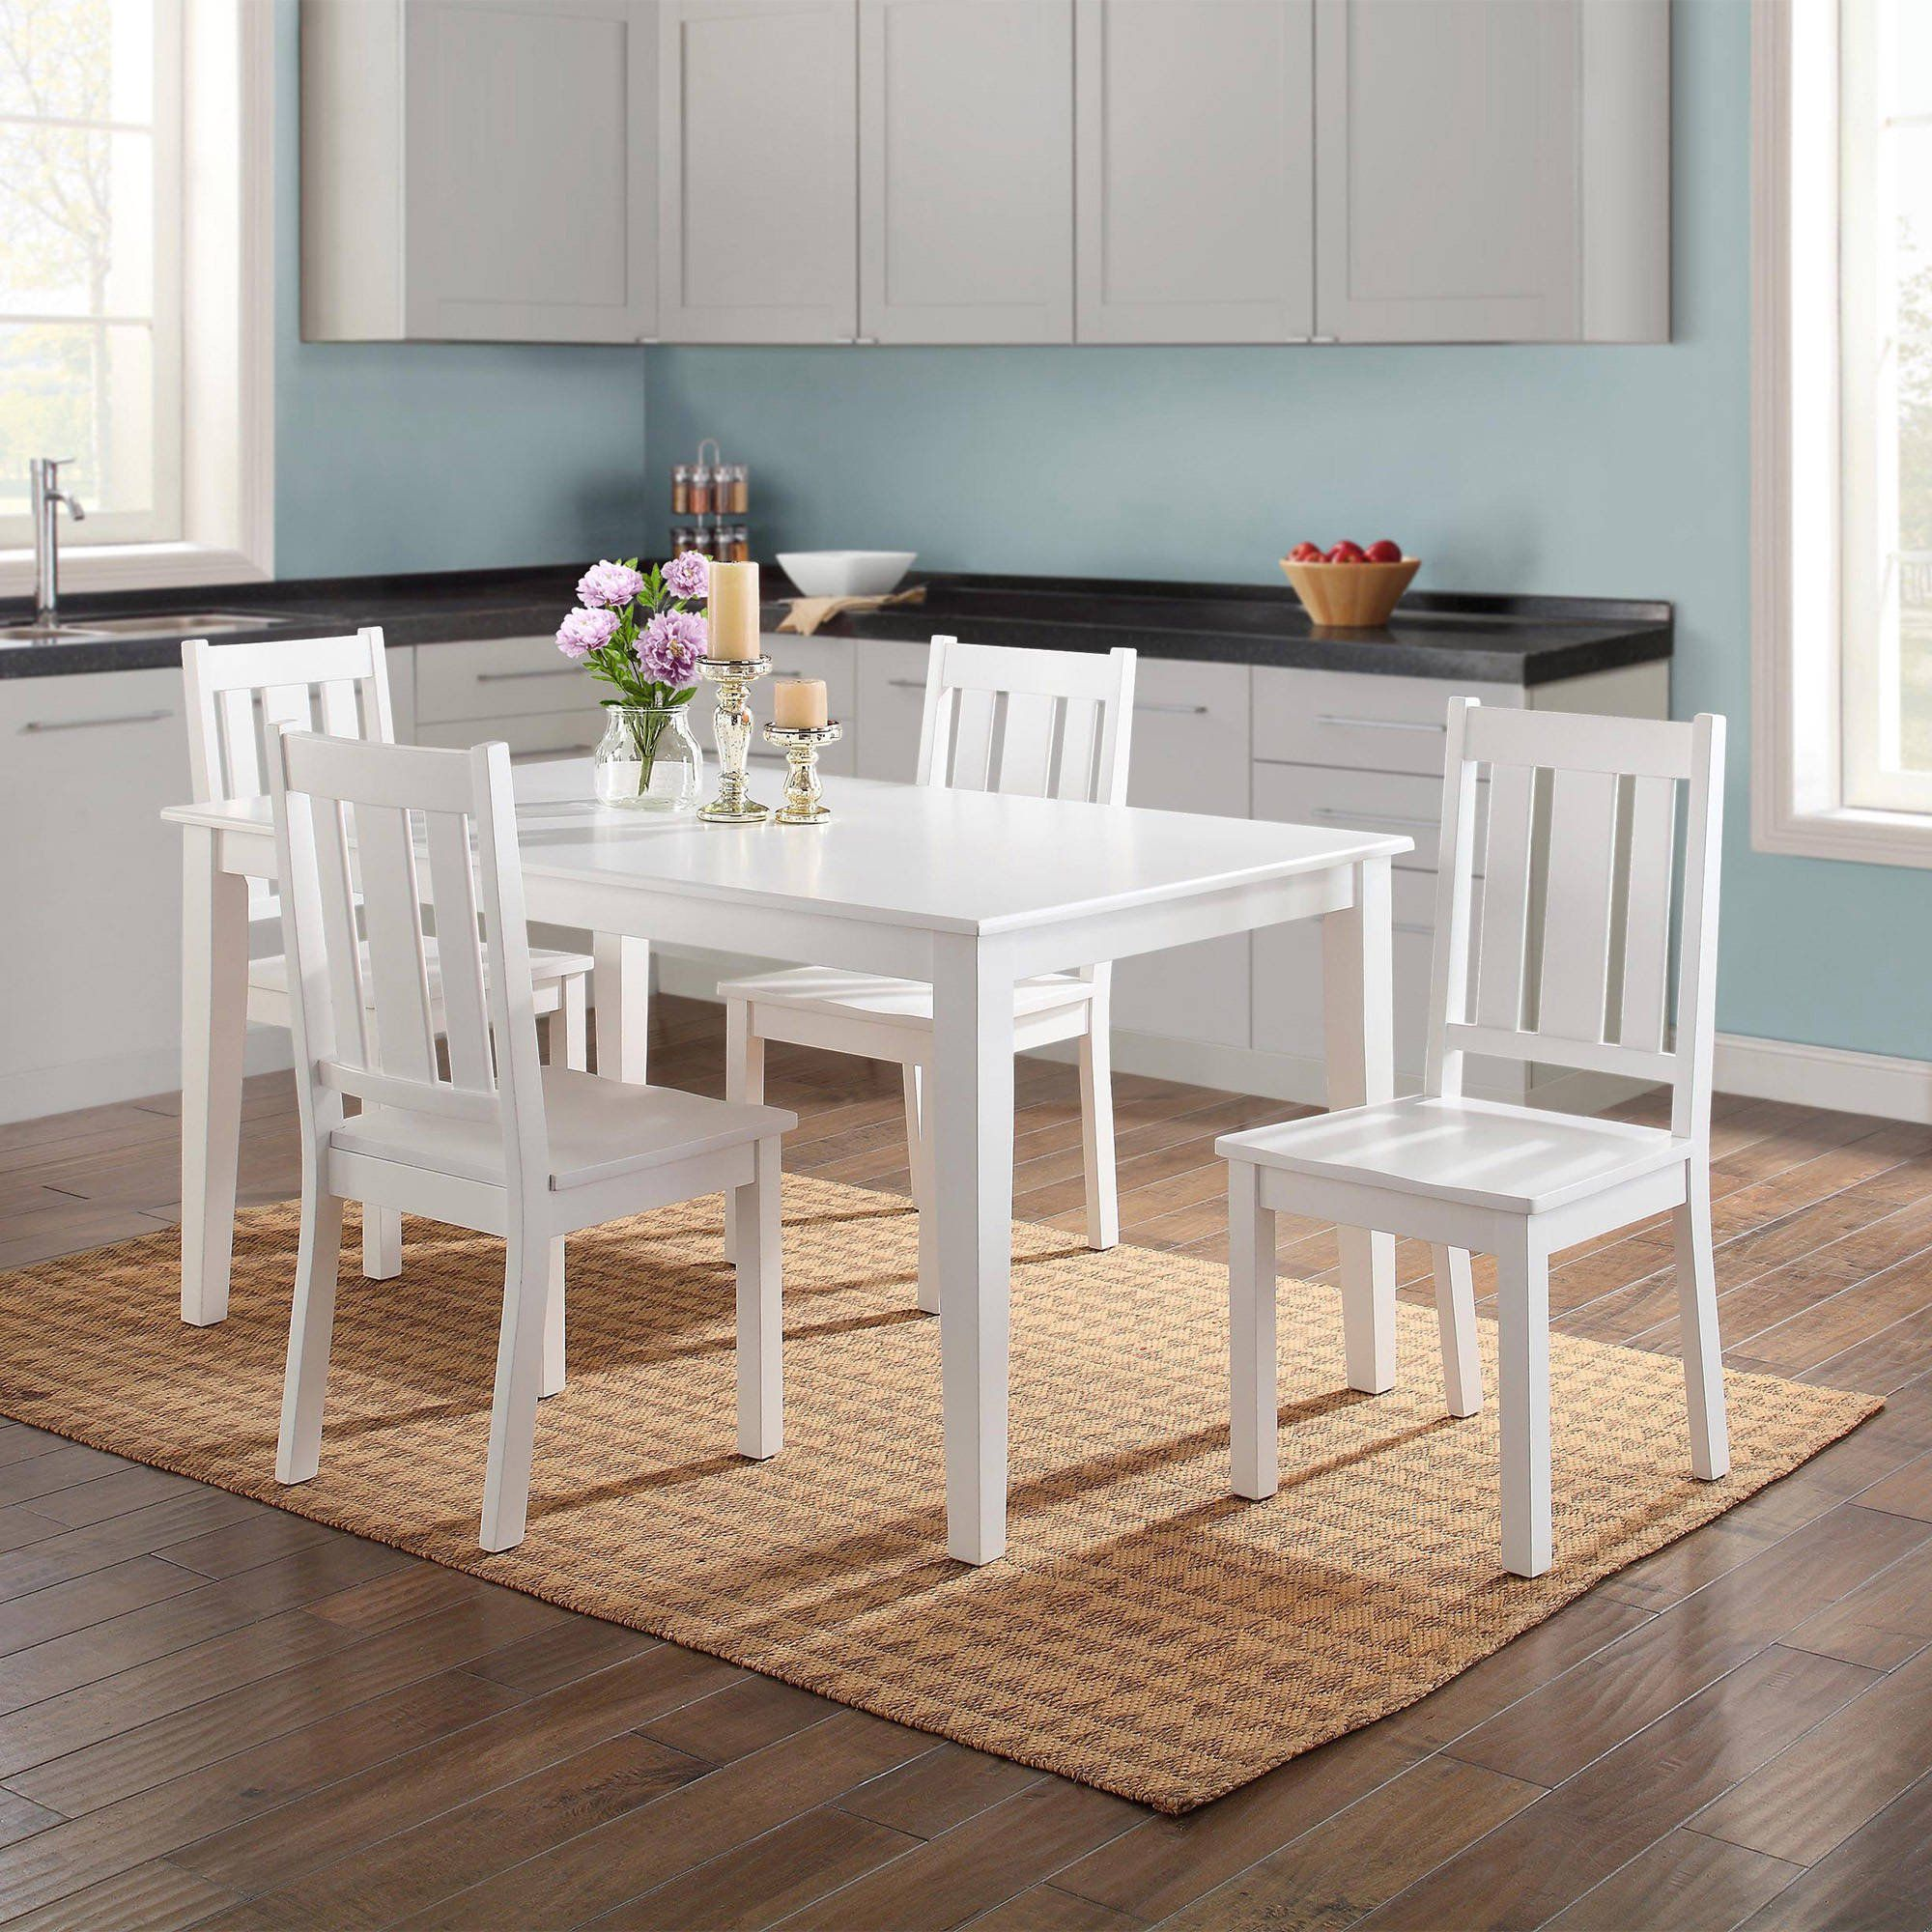 fea8368a43ac3c6b16317db90ca7cdde - Better Homes And Gardens Bankston Dining Table Multiple Finishes